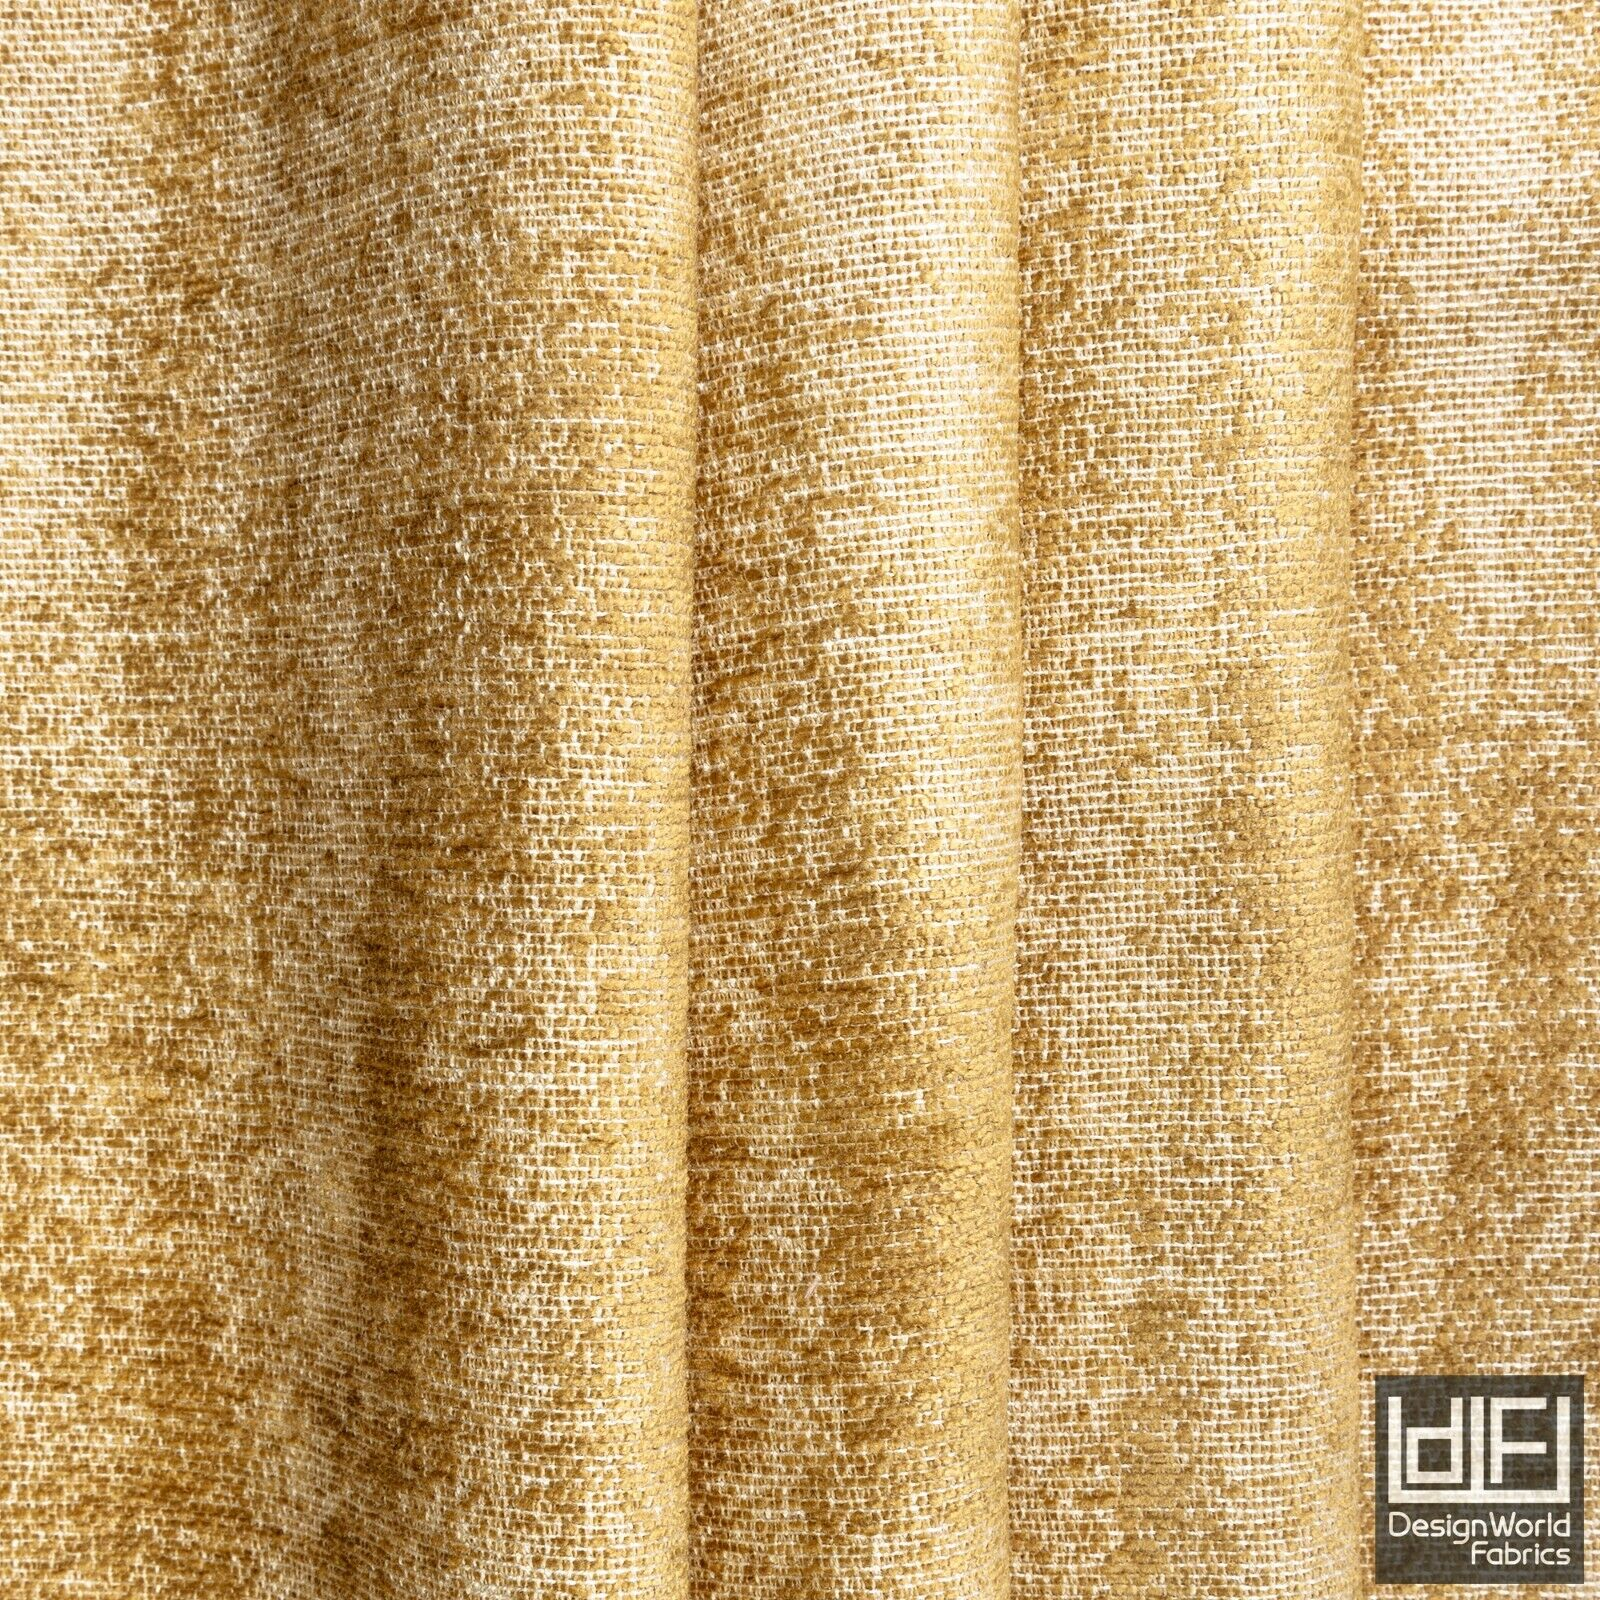 Camel Beige Curtain Fabric Textured Plain Chenille Soft Cushion Blind Material